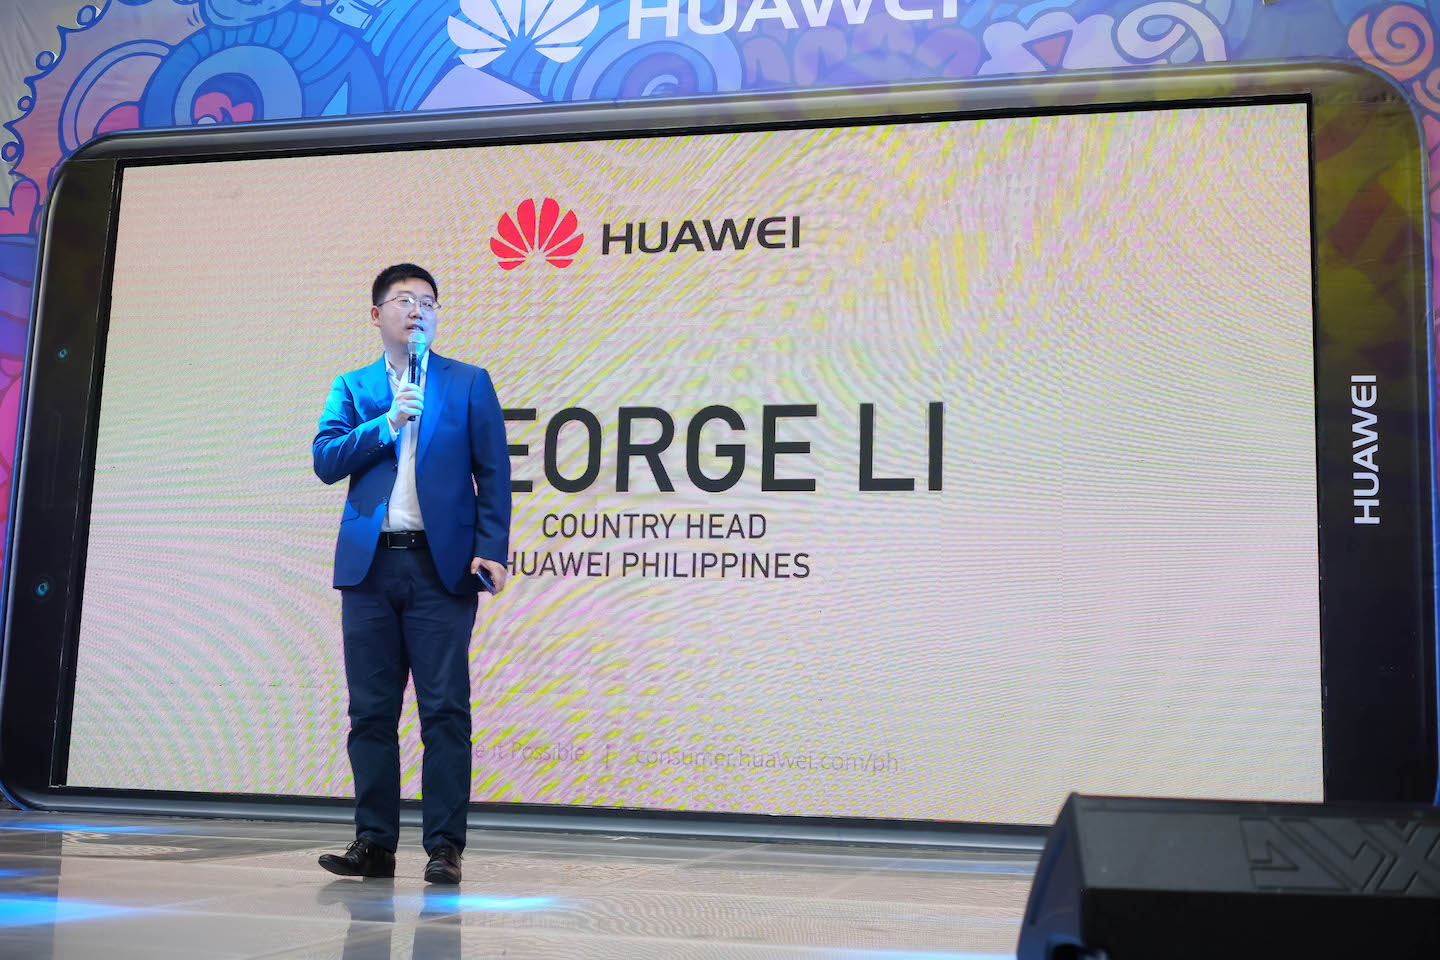 5,000 Units Sold at The Huawe Nova 2 Lite Launch at MOA Atrium